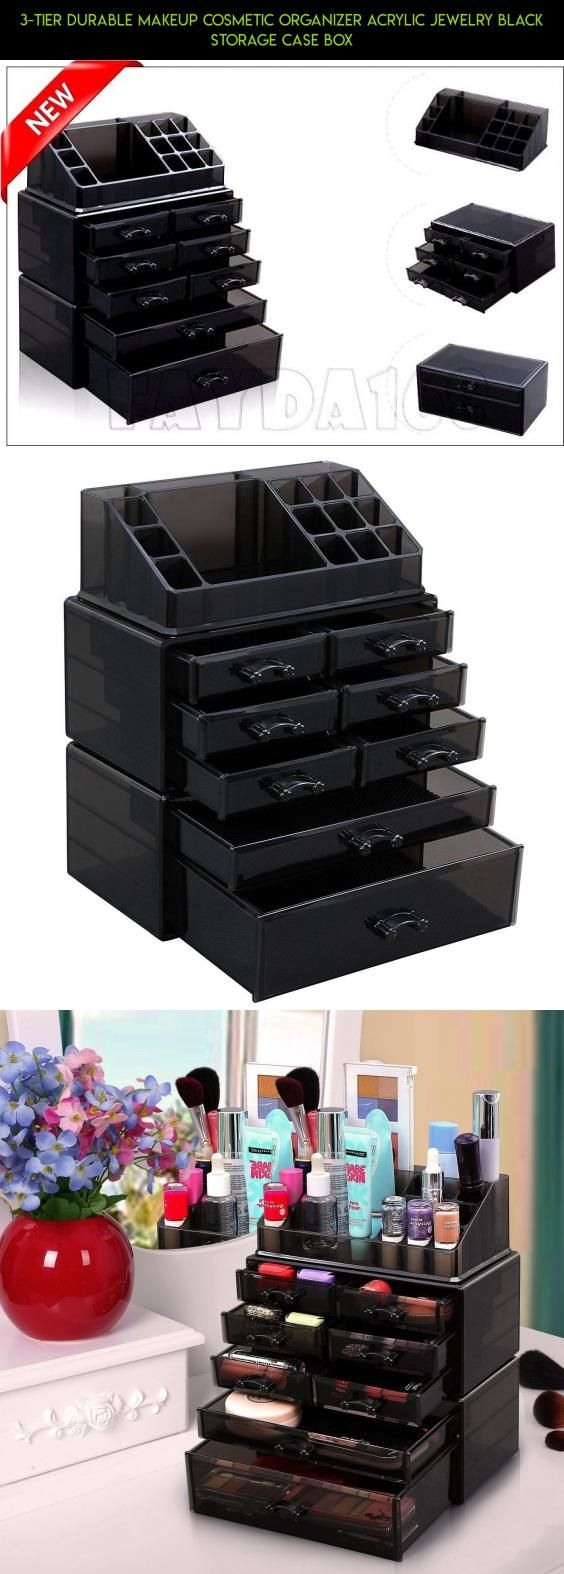 3-Tier Durable Makeup Cosmetic Organizer Acrylic Jewelry BLACK Storage Case Box #gadgets #camera #makeup #products #shopping #tech #parts #racing #storage #drone #technology #fpv #kit #plans